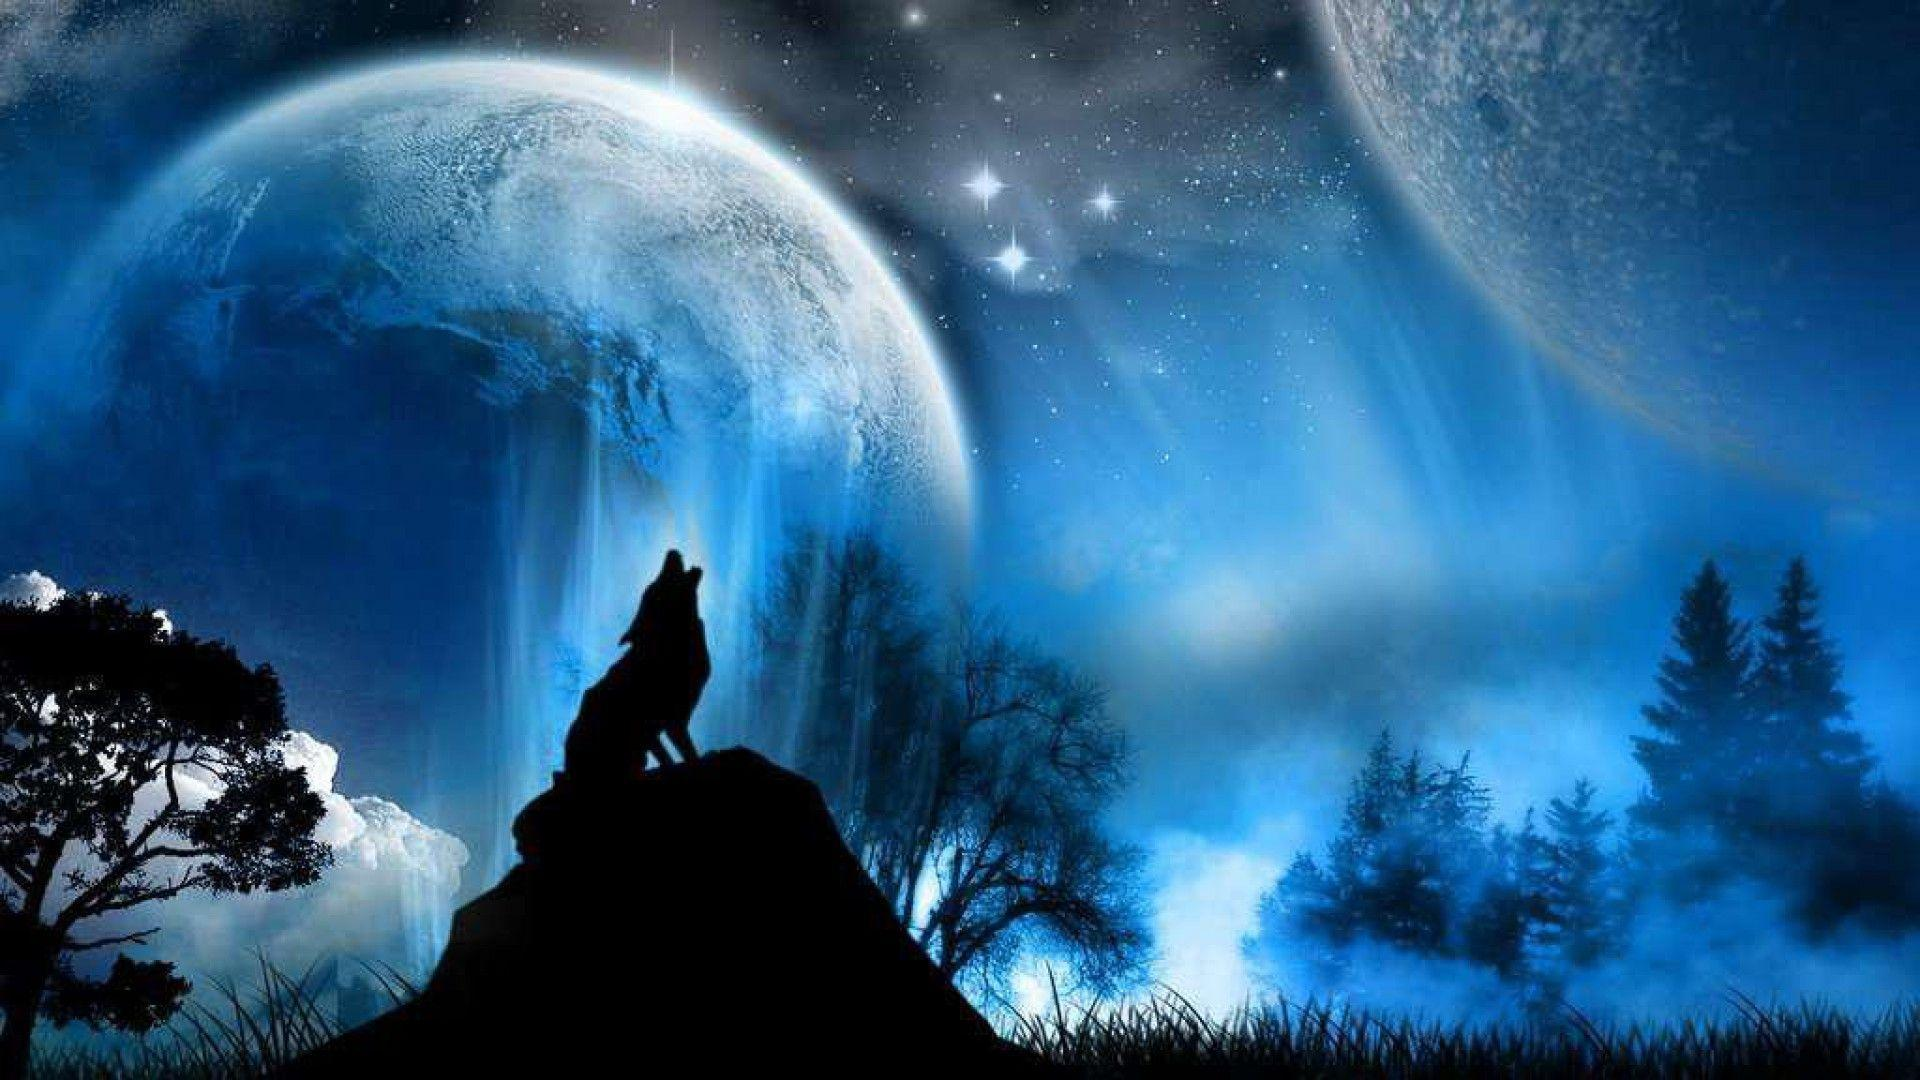 Night Wolf Wallpapers   Wallpaper Cave